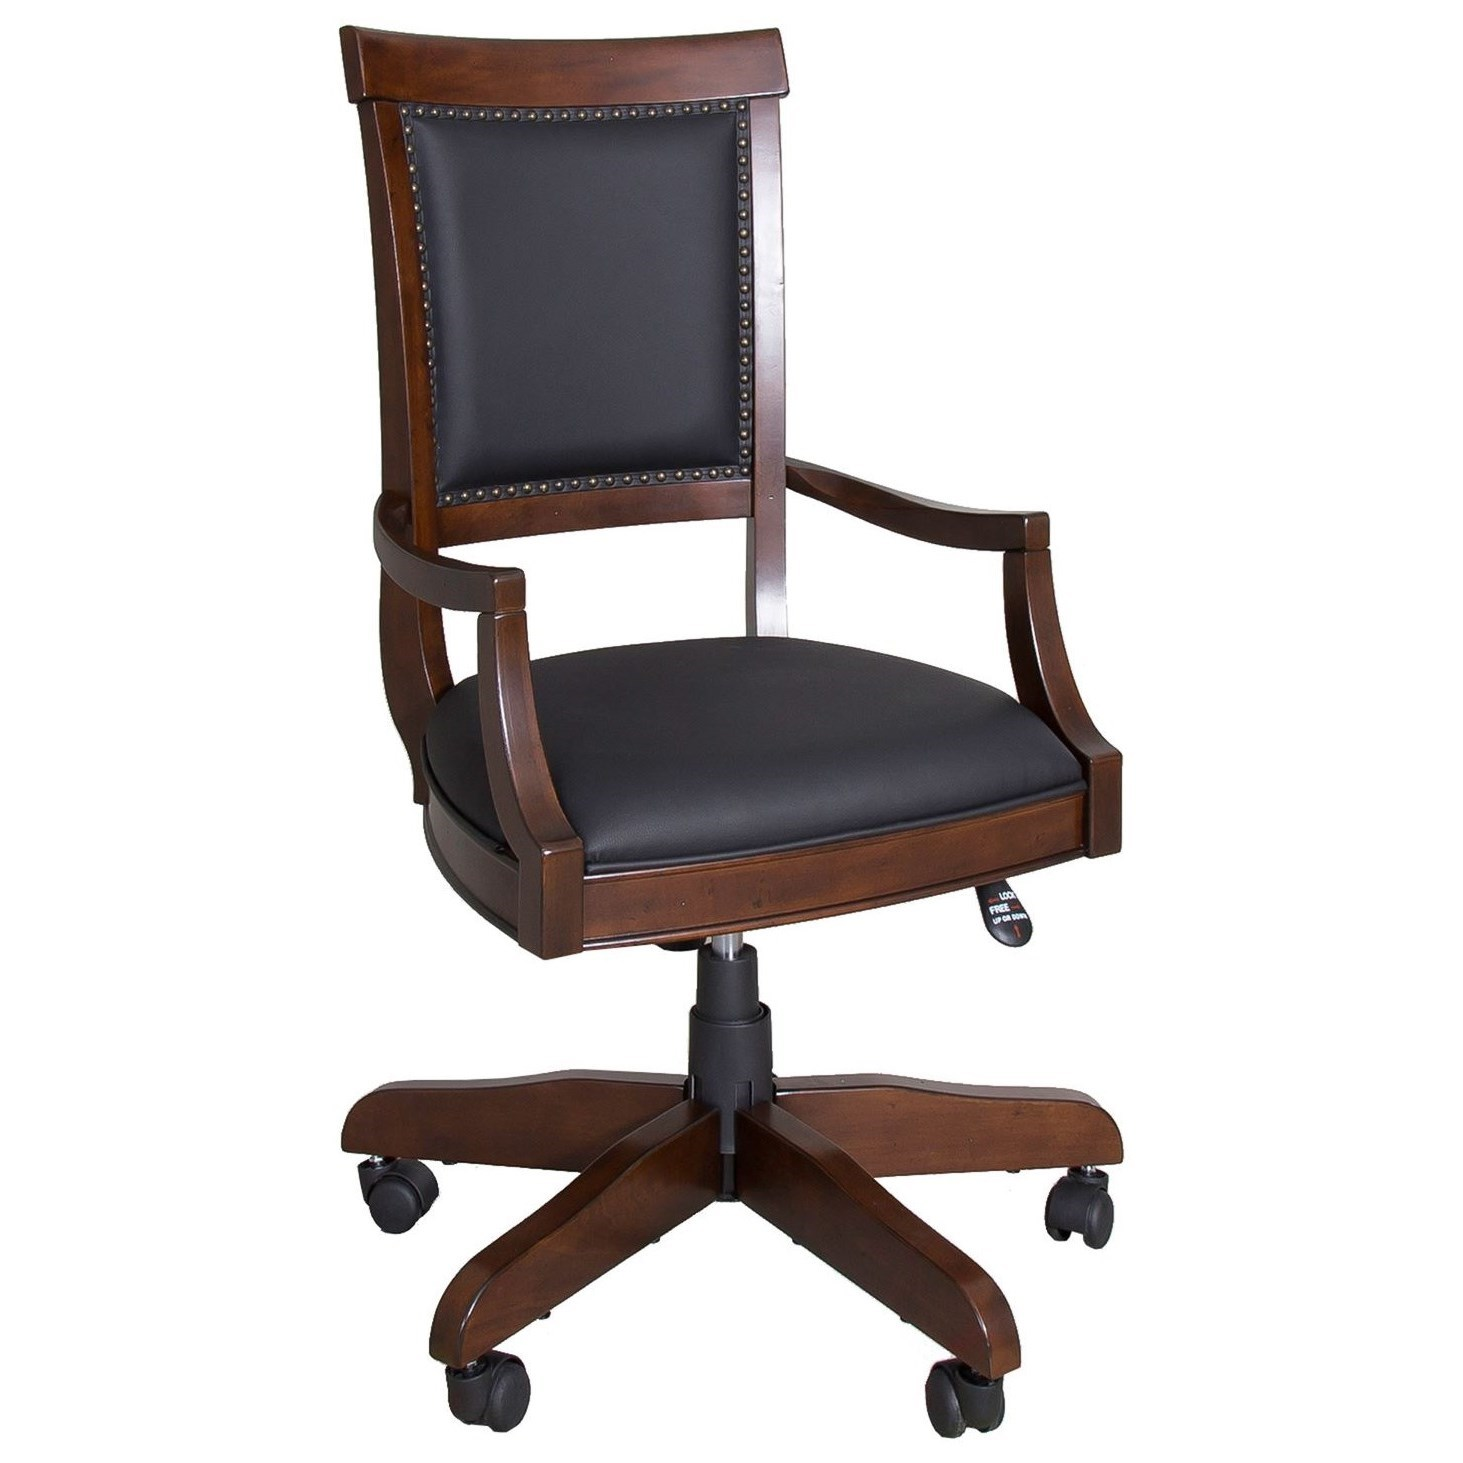 Brayton Manor Jr Executive Executive Desk Chair by Liberty Furniture at Darvin Furniture